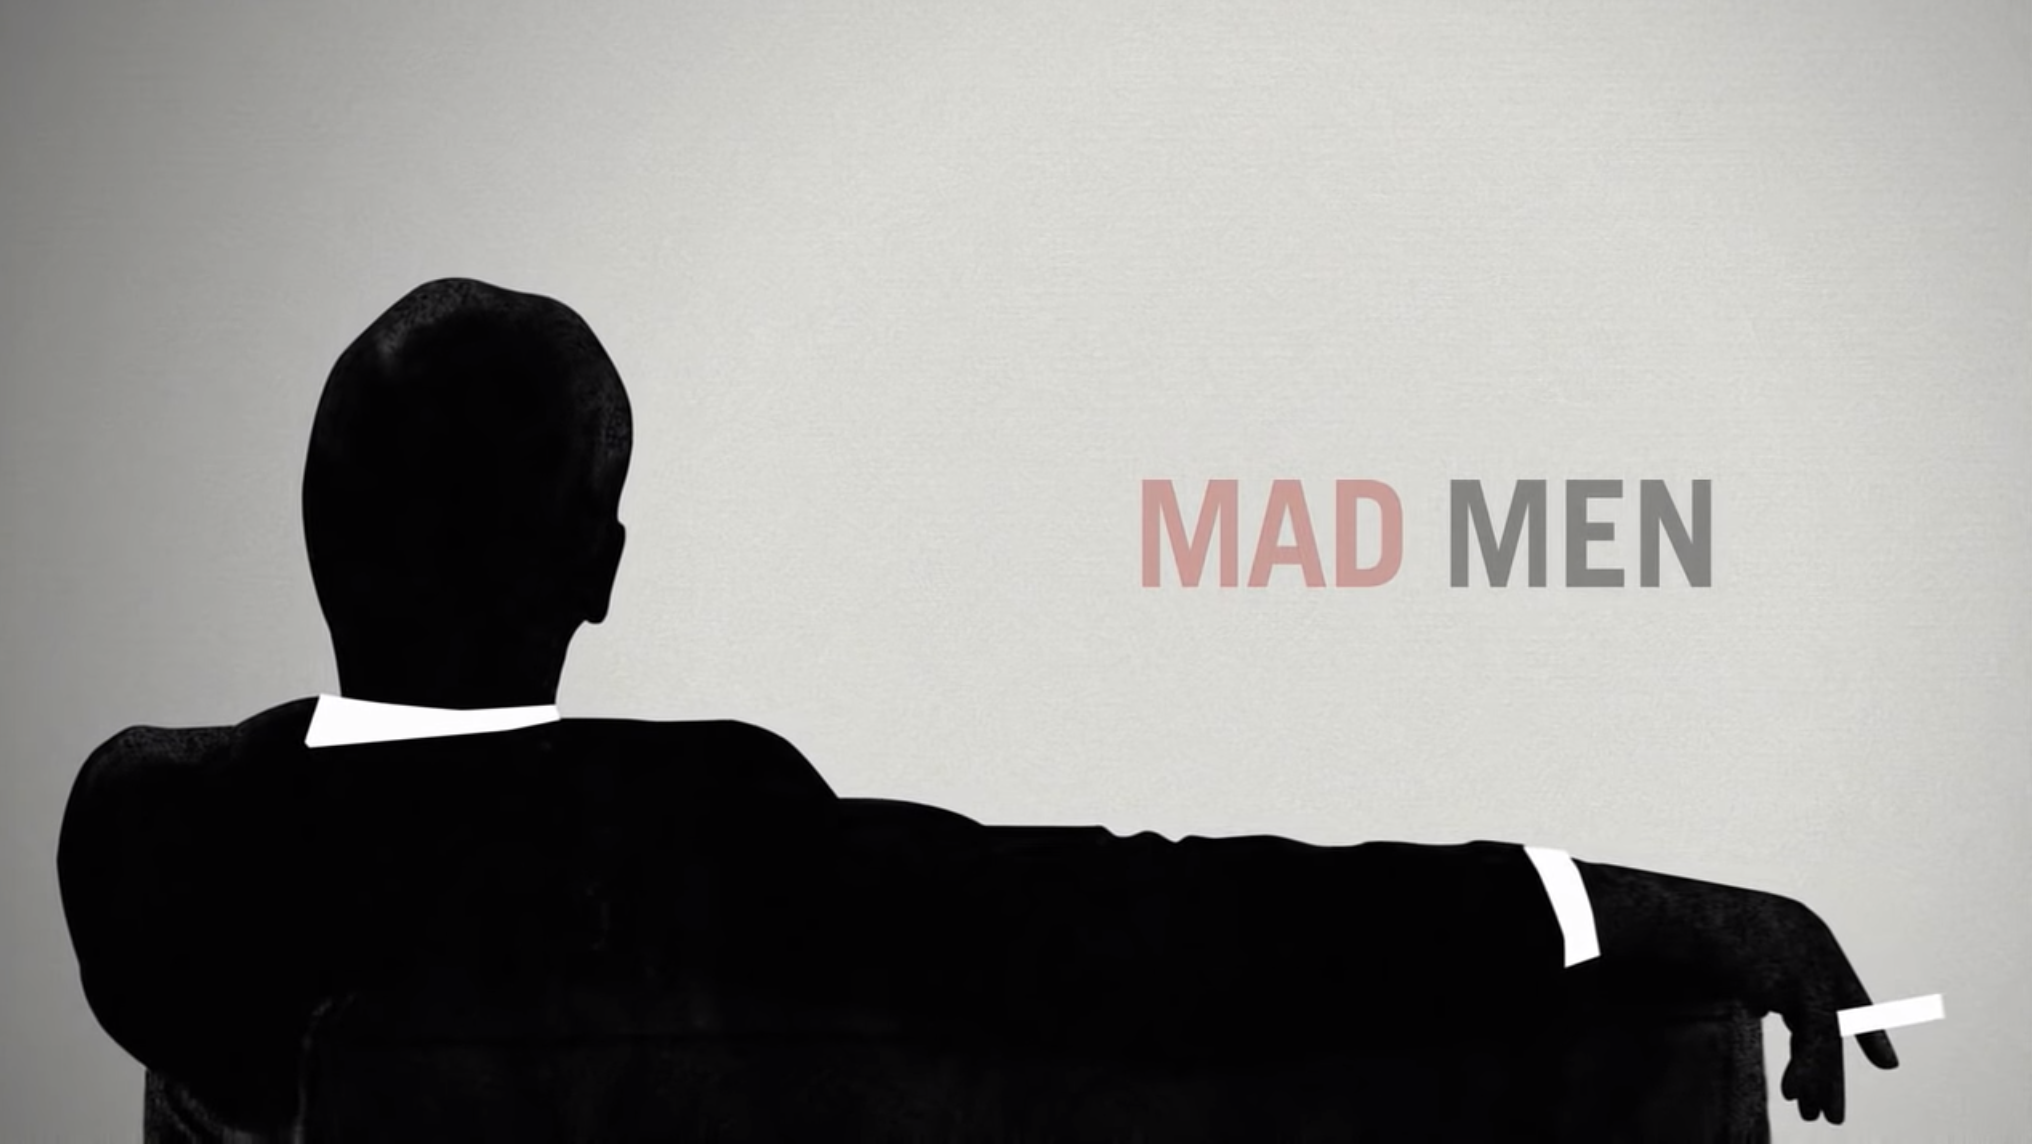 """Mad Men"" title card — which is the title over a silhouette of a sitting man smoking a cigarette."